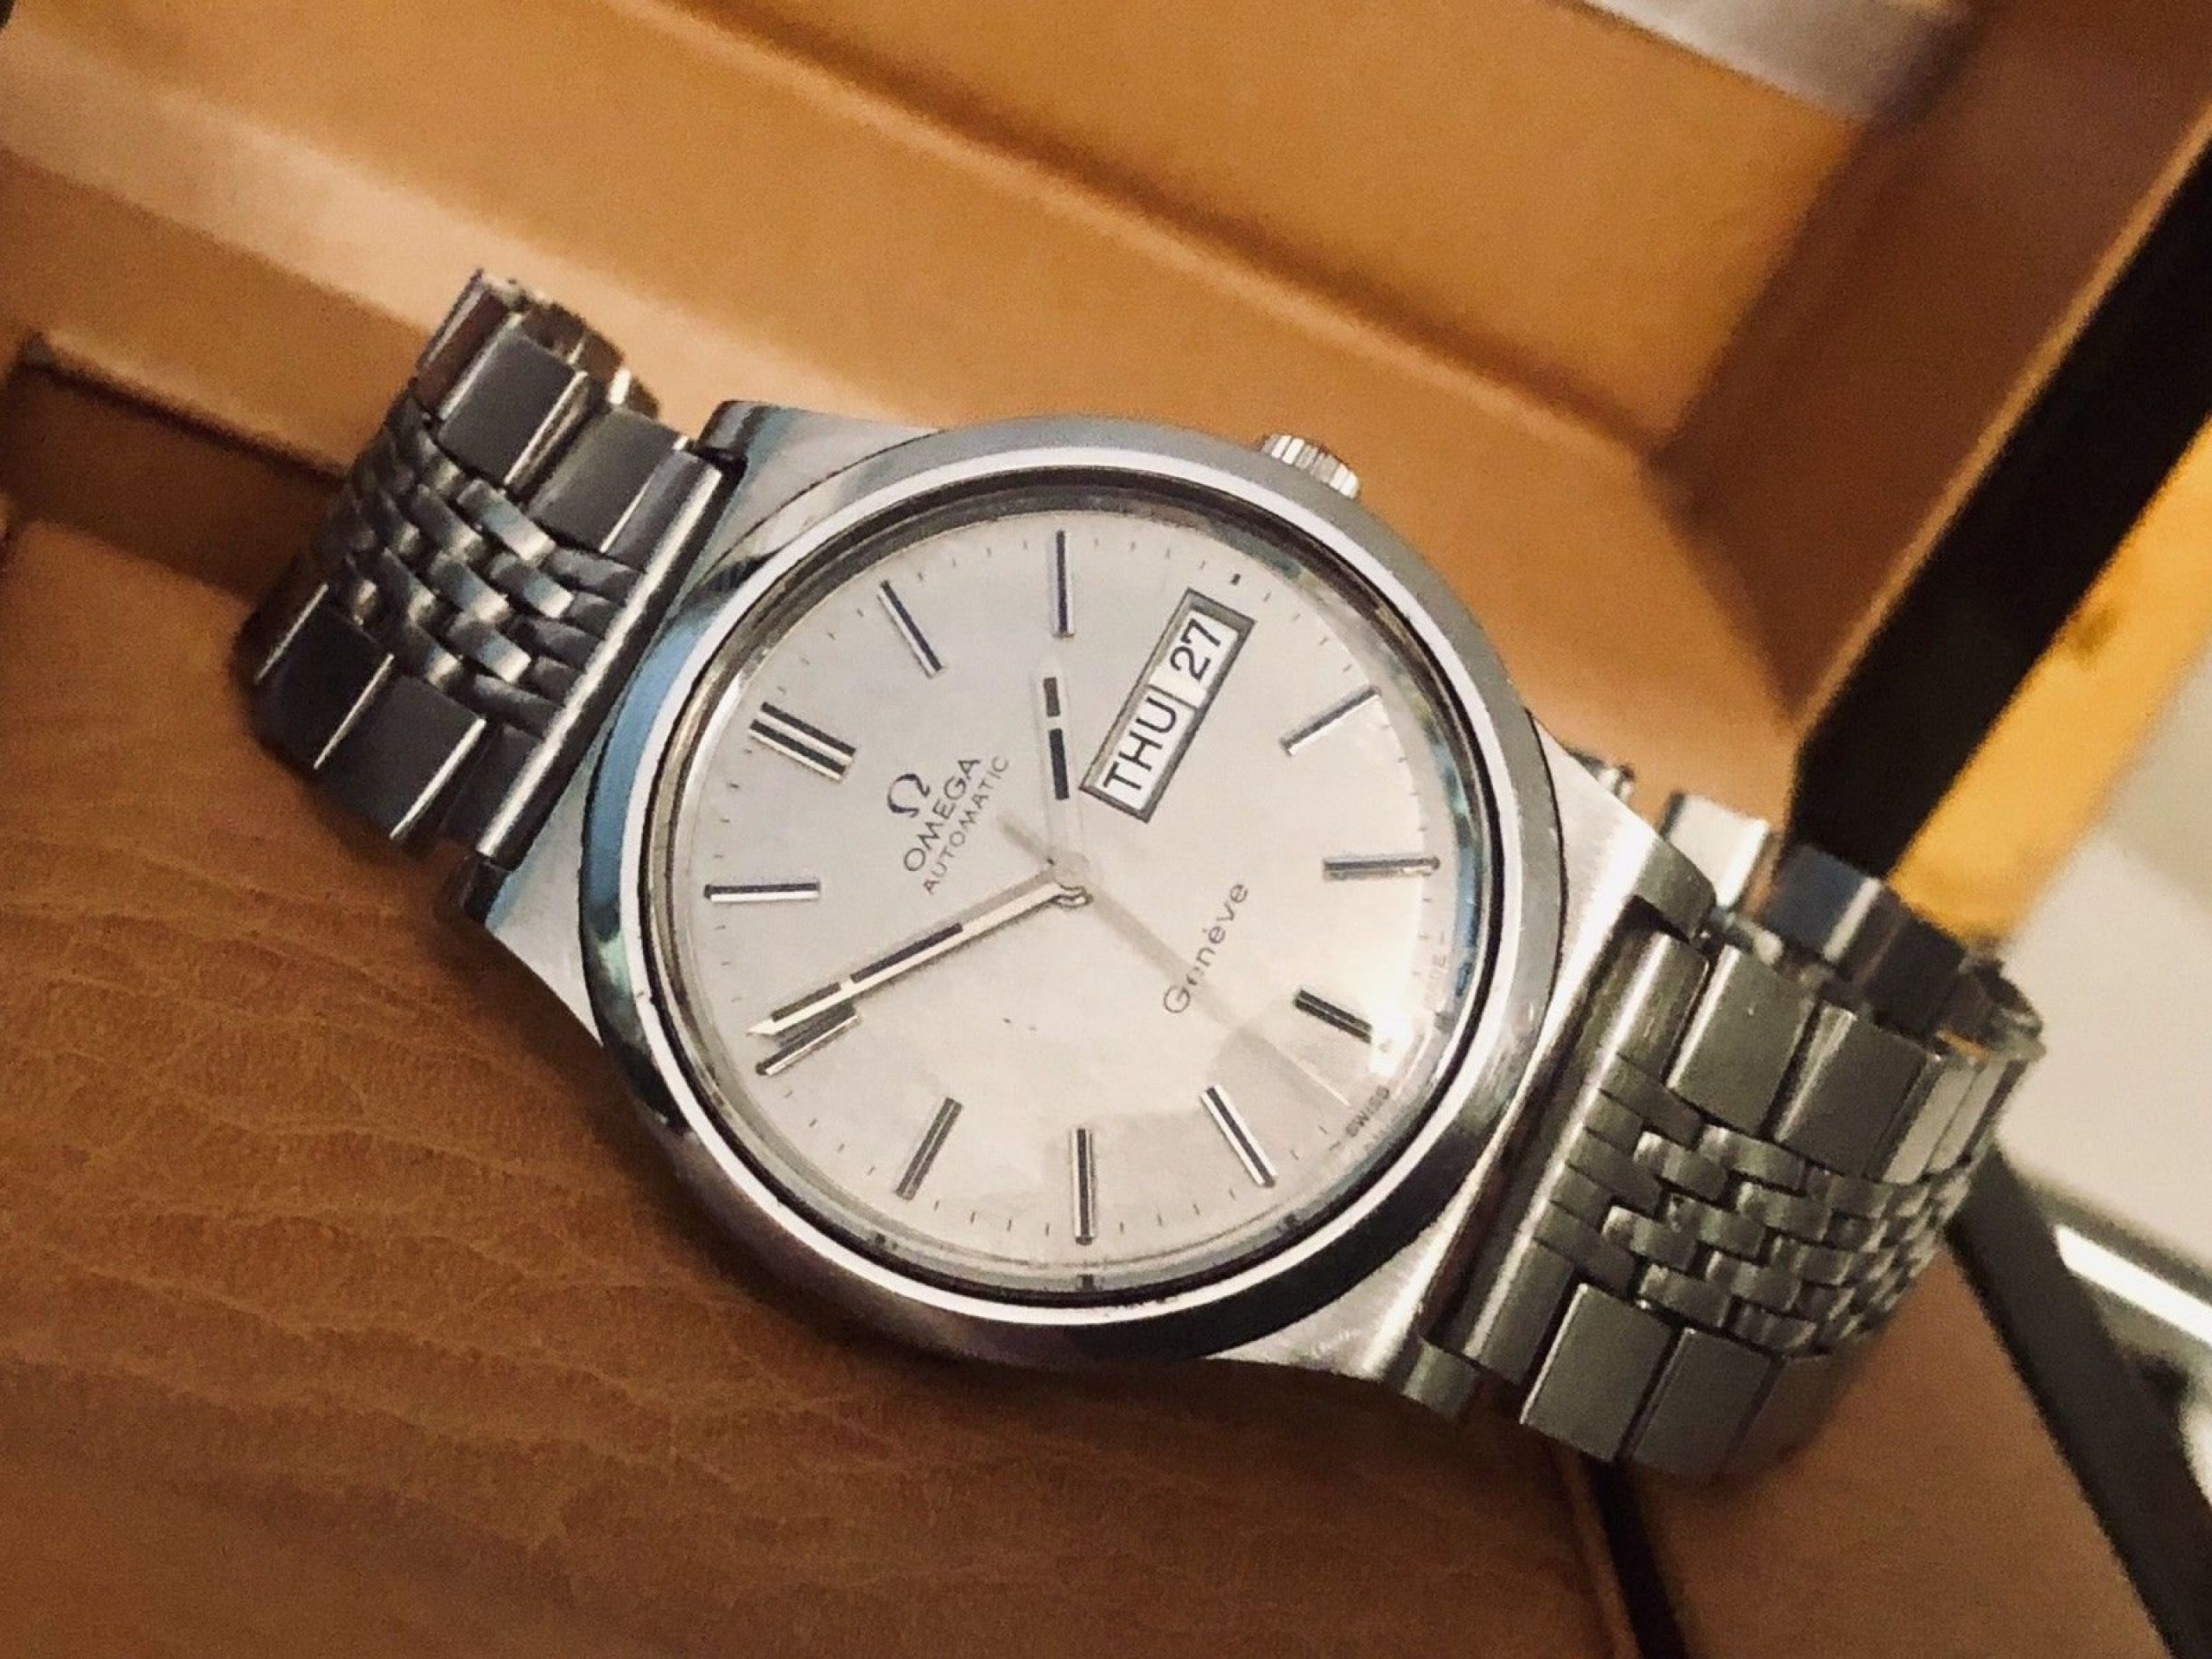 OMEGA VINTAGE RARE DAY DATE GENEVE CAL 1022 AUTOMATIC MECHANICAL WATCH STEEL